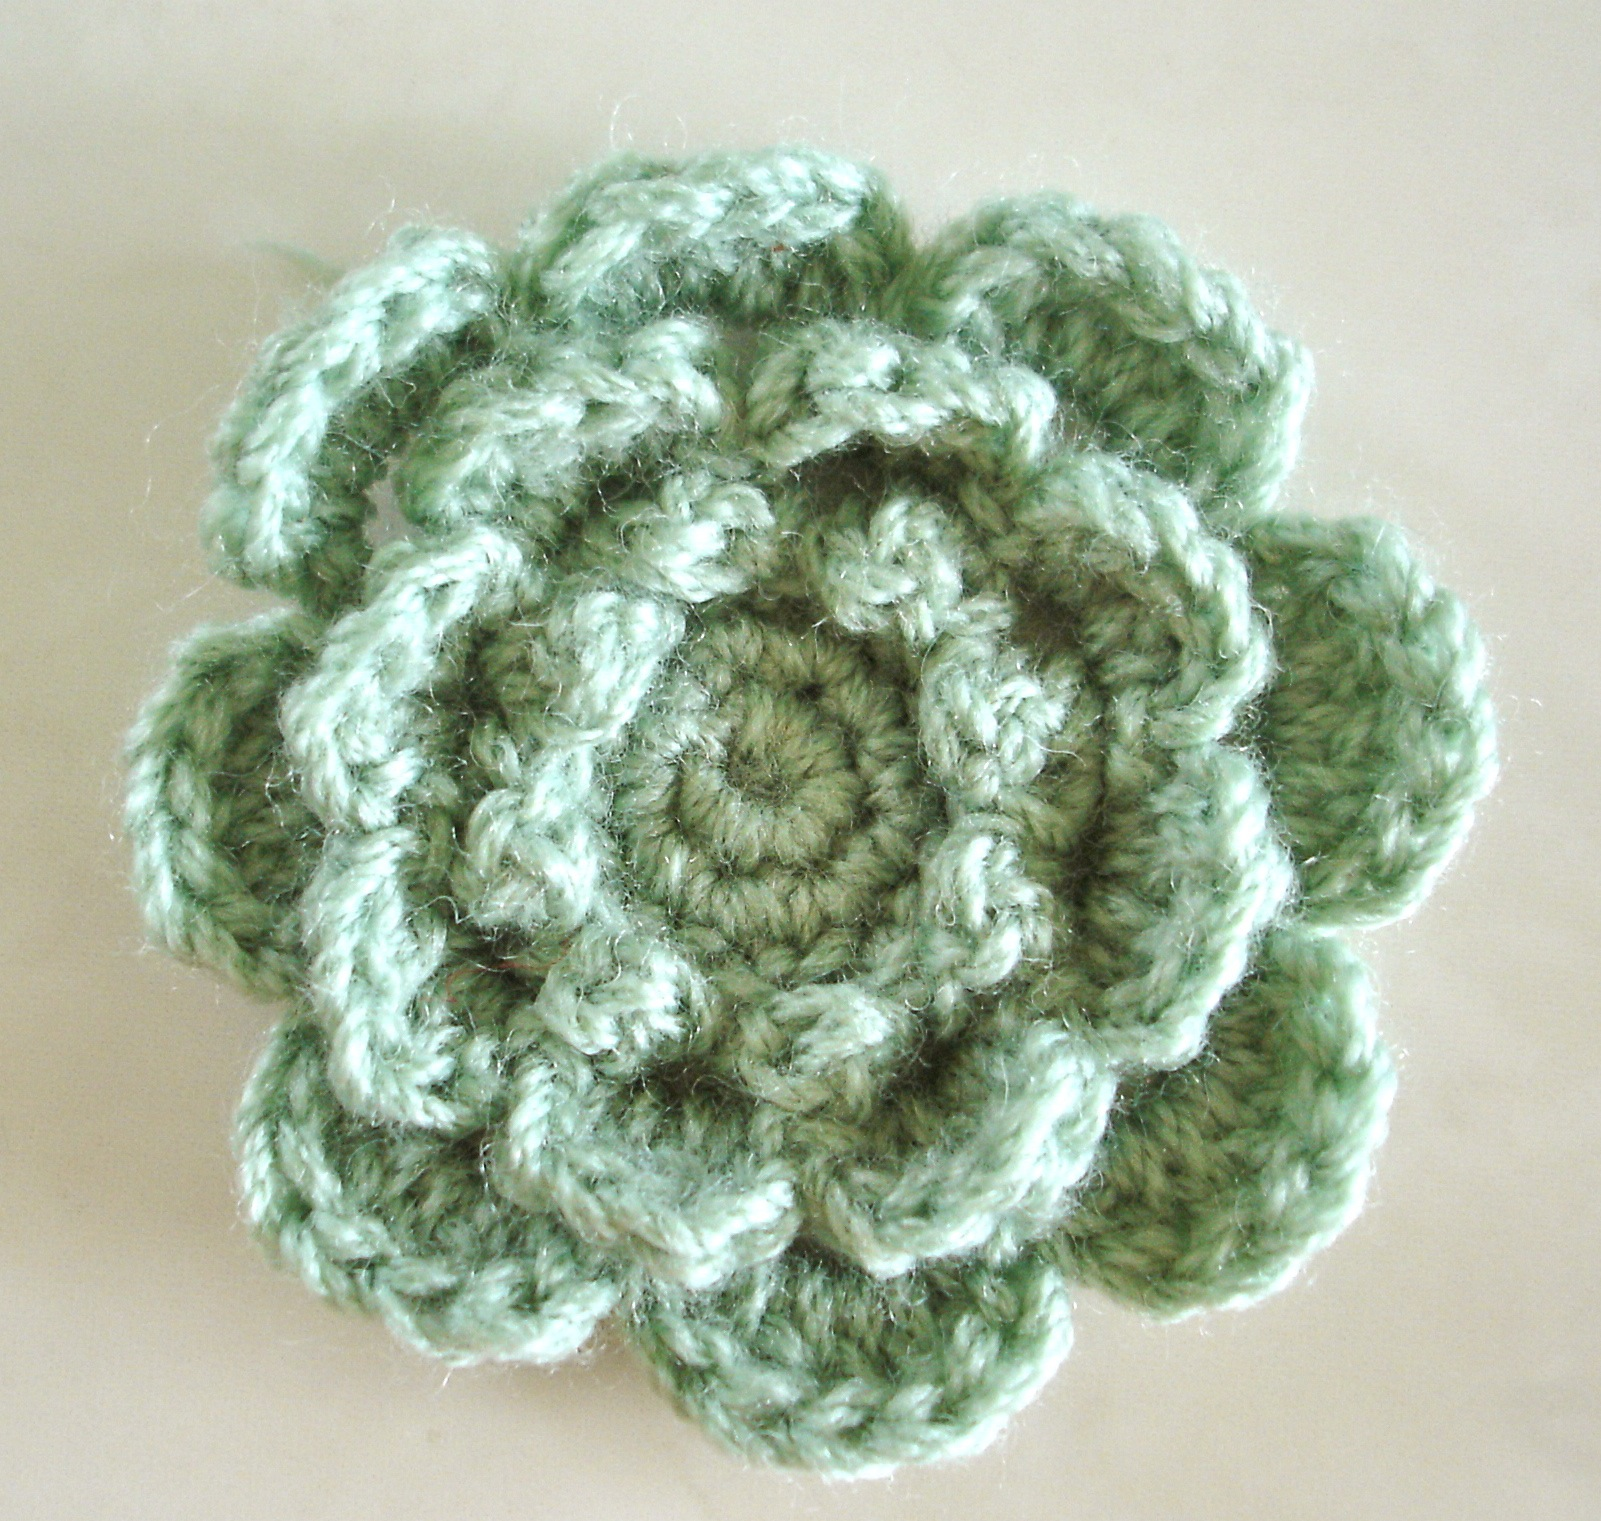 Crochet Patterns Of Flowers : CROCHETED FLOWERS PATTERNS - Crochet and Knitting Patterns